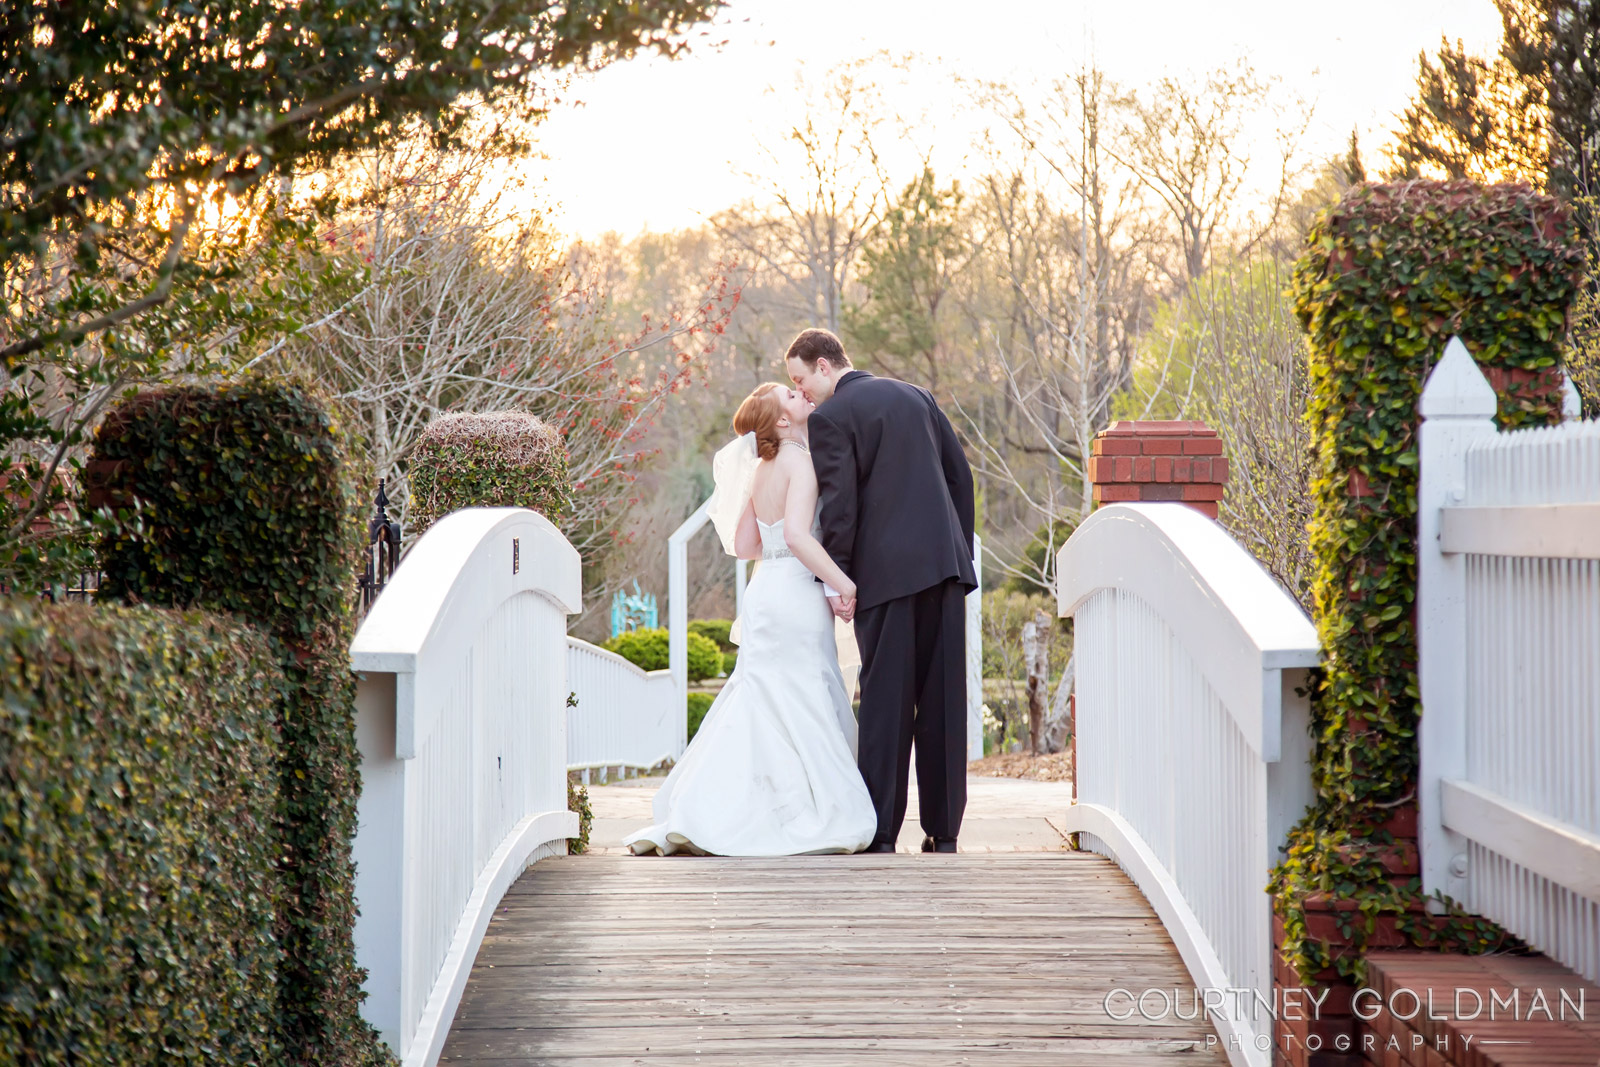 Atlanta-Wedding-Photography-by-Courtney-Goldman-51.jpg